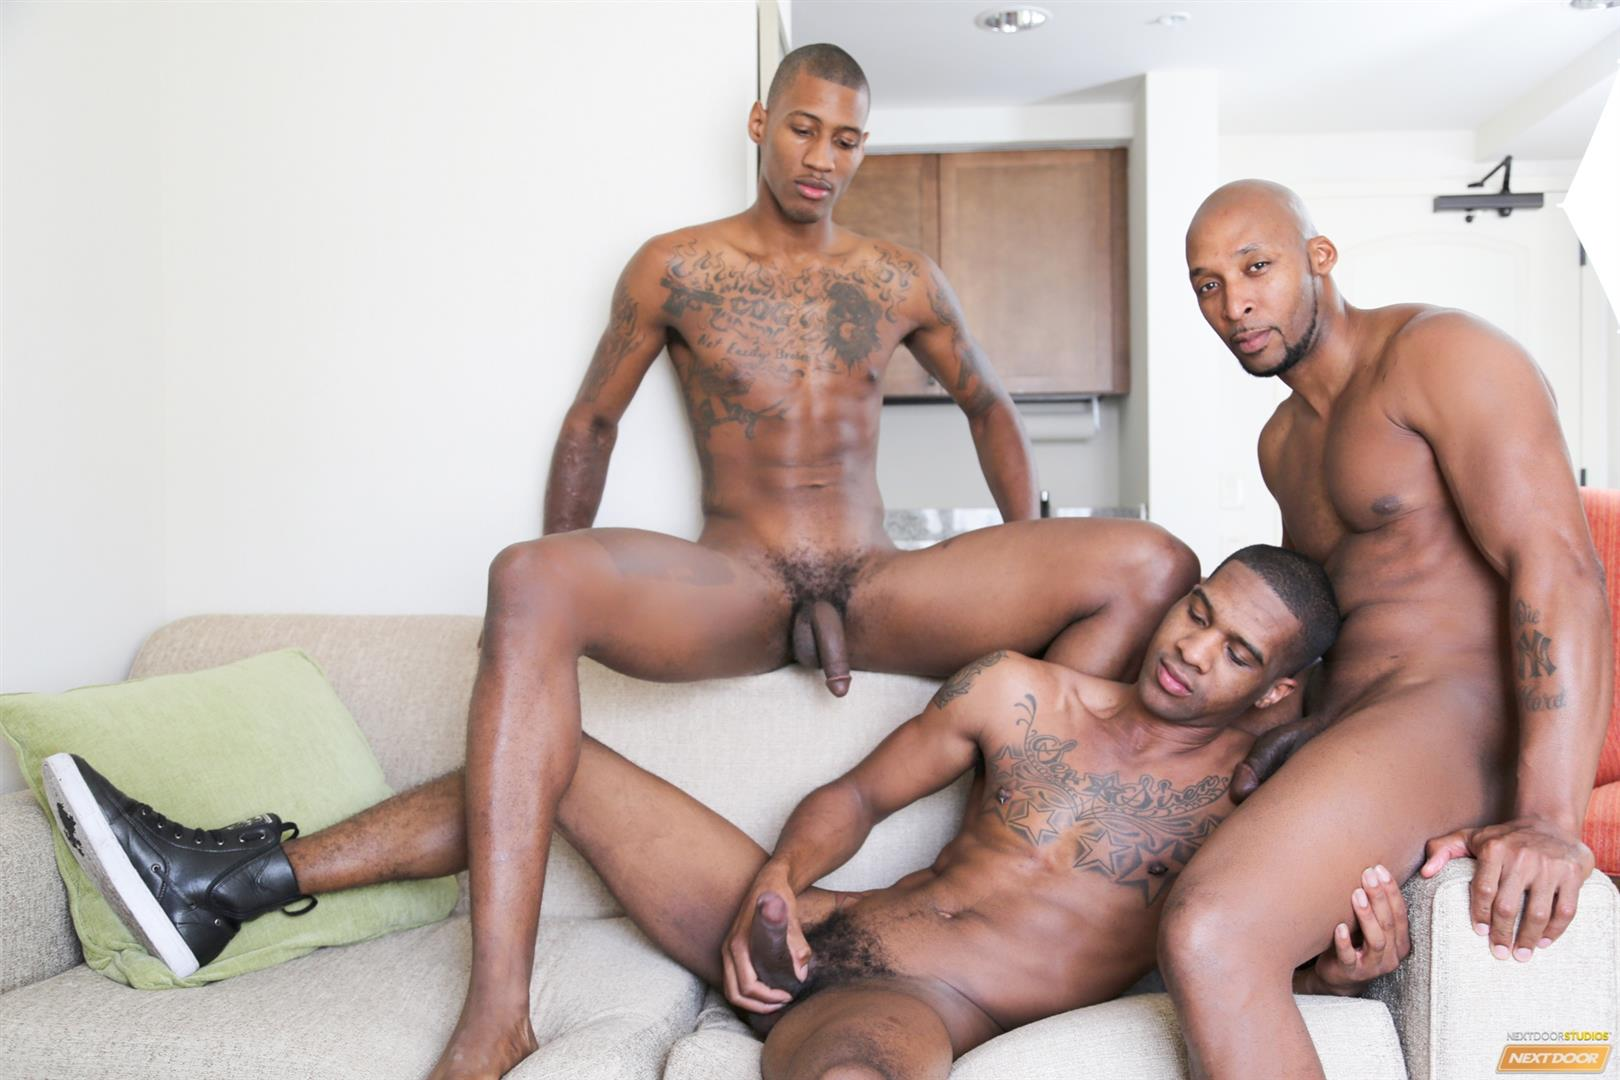 Next Door Ebony Ramsees and King B and Staxx Big Black Cock Group Sex Amateur Gay Porn 06 King B Takes Two Big Black Cocks Up The Ass For His Birthday